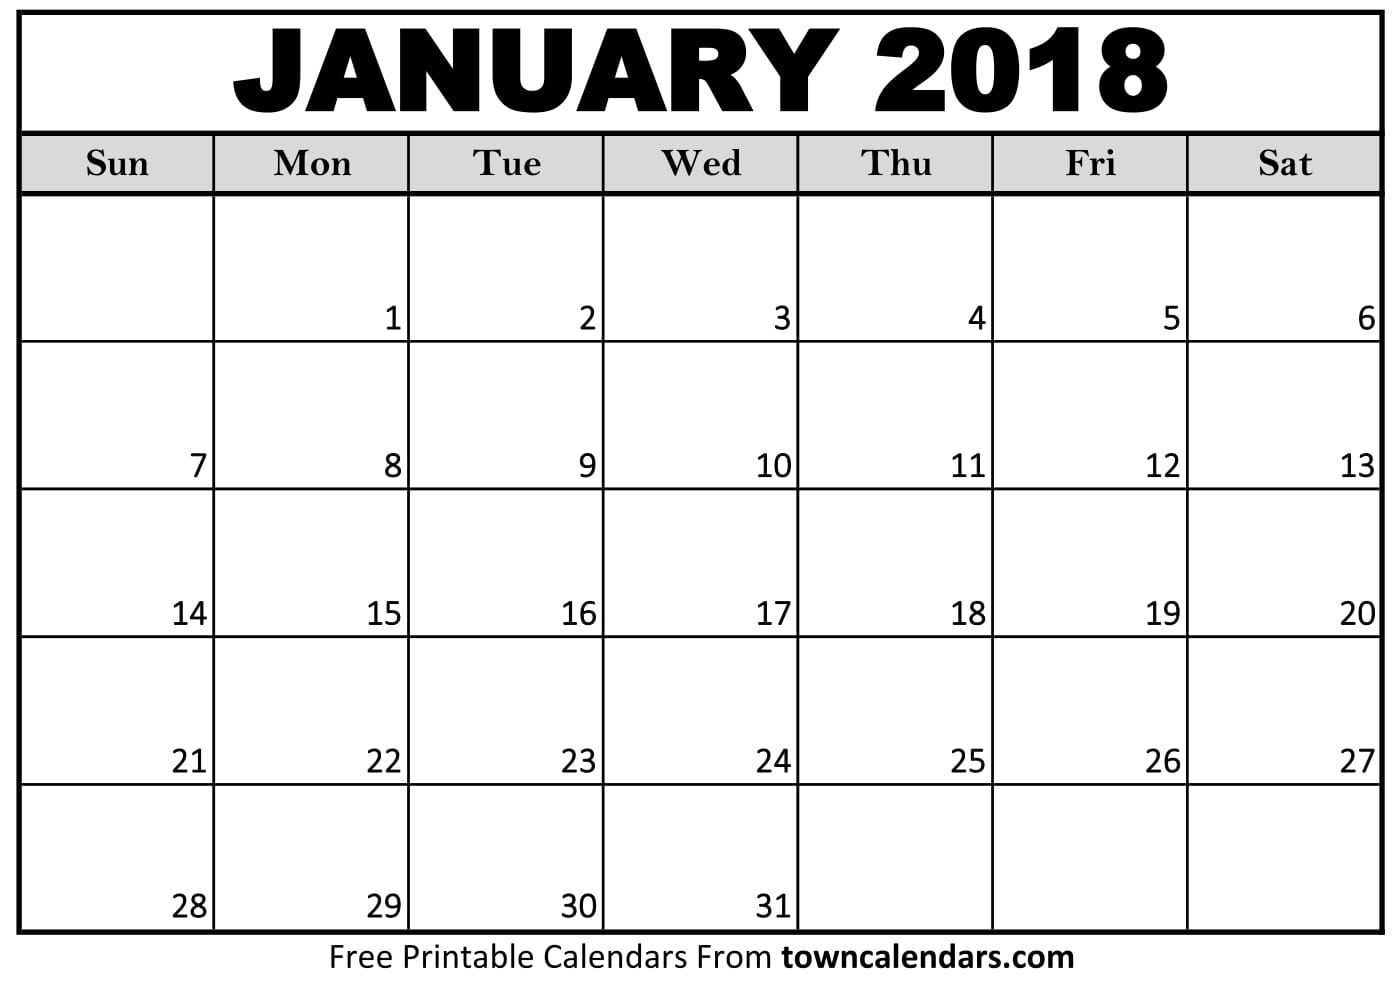 January 2018 calendar pdf printable template with holidays for Calnedar template